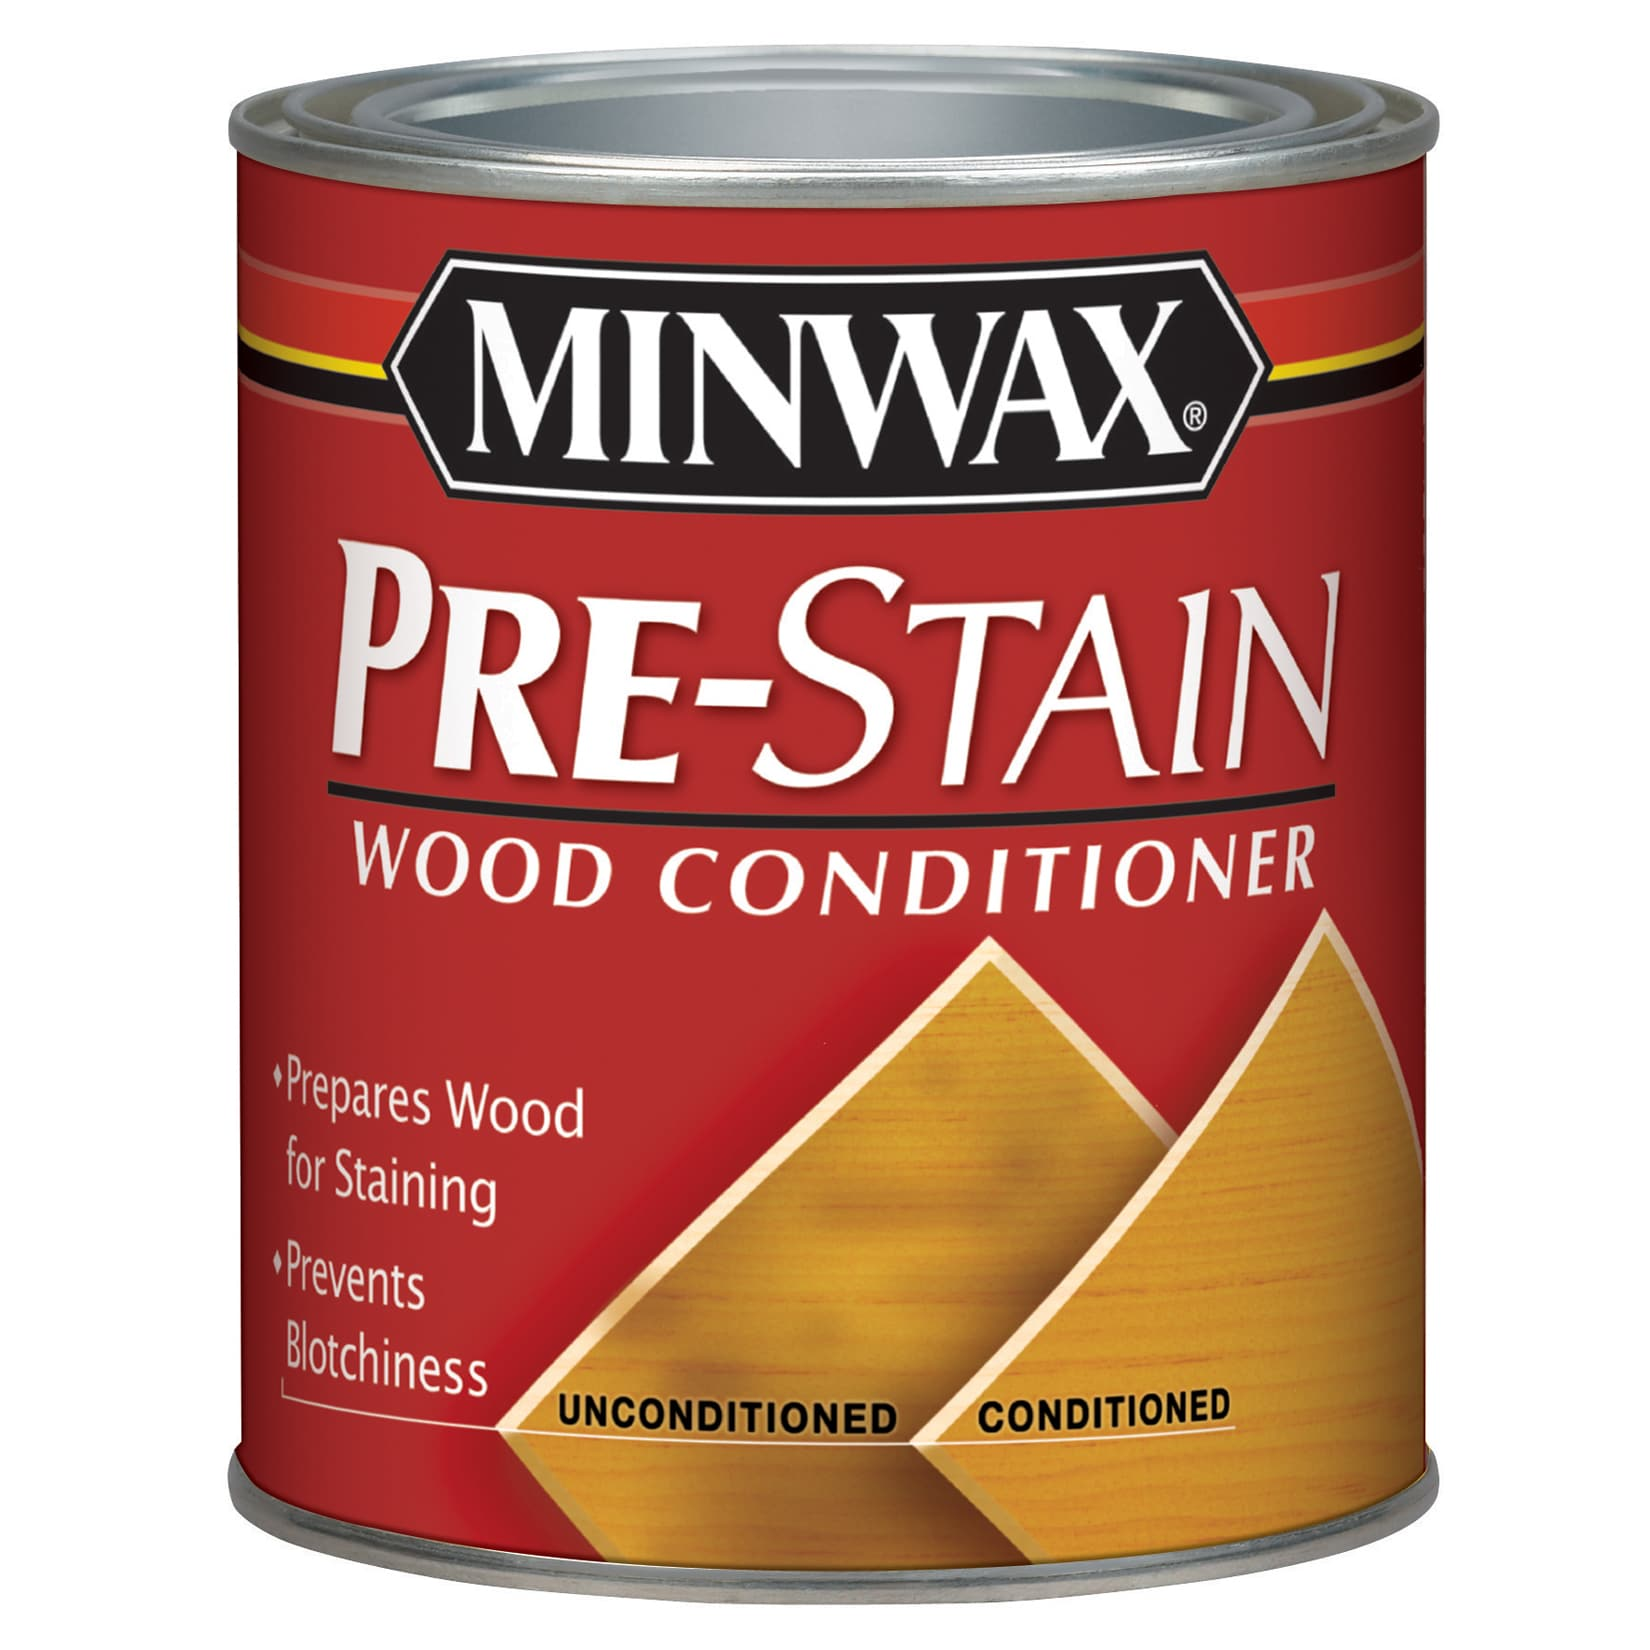 Minwax wood finish stain home garden compare prices at nextag minwax 13407 12 pint pre stain wood conditioner interio nvjuhfo Images